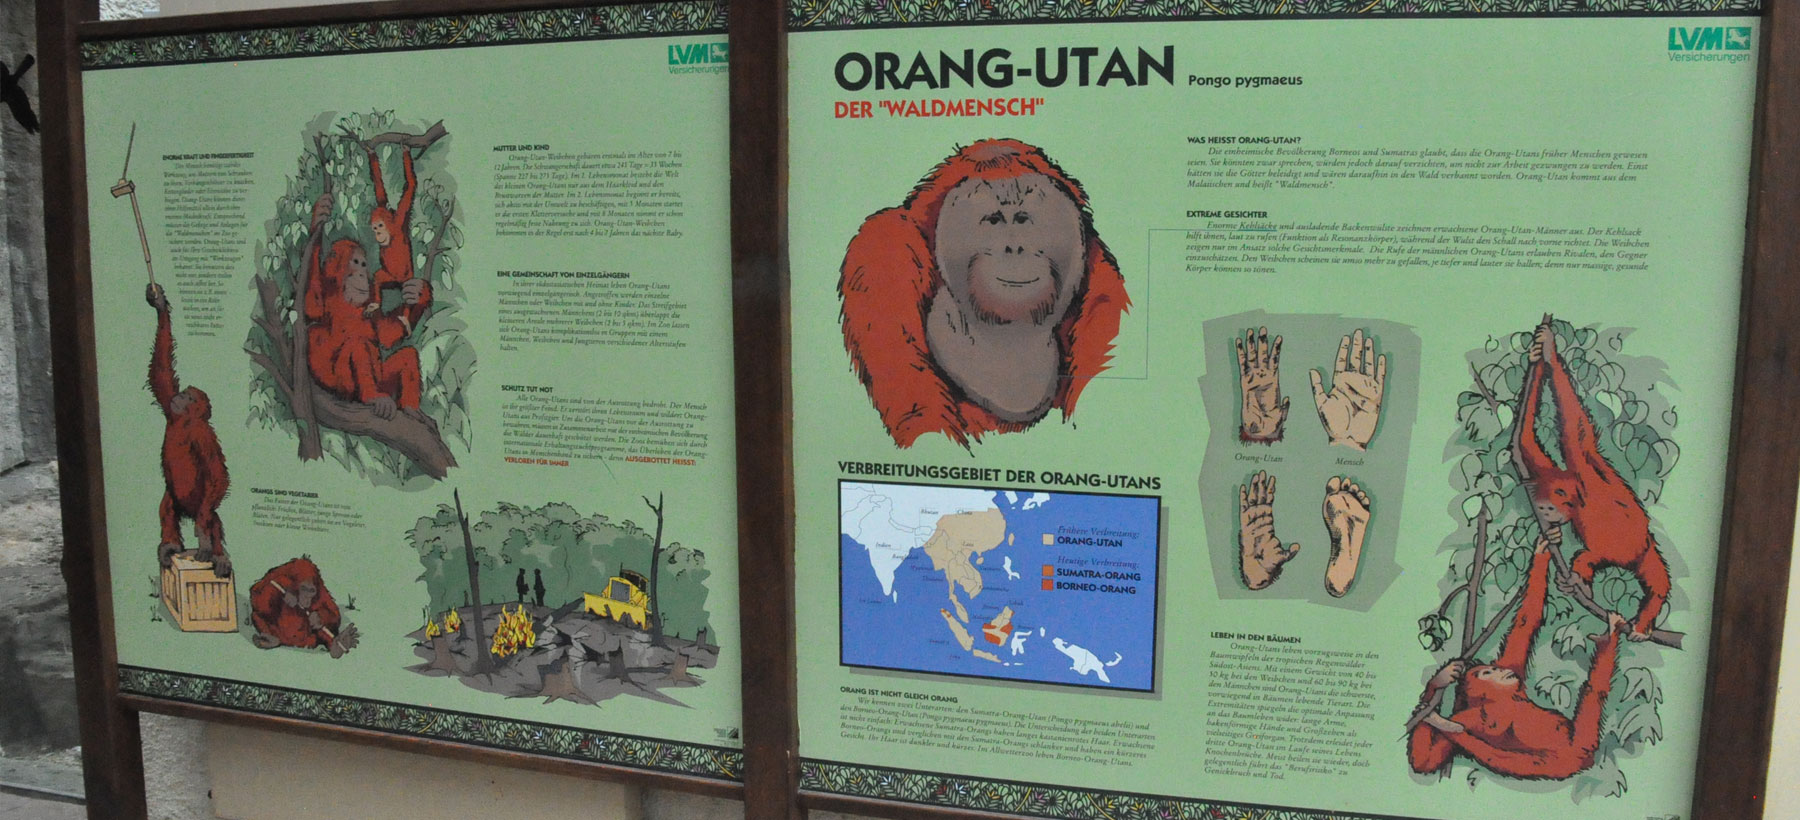 examples of Zoo signage